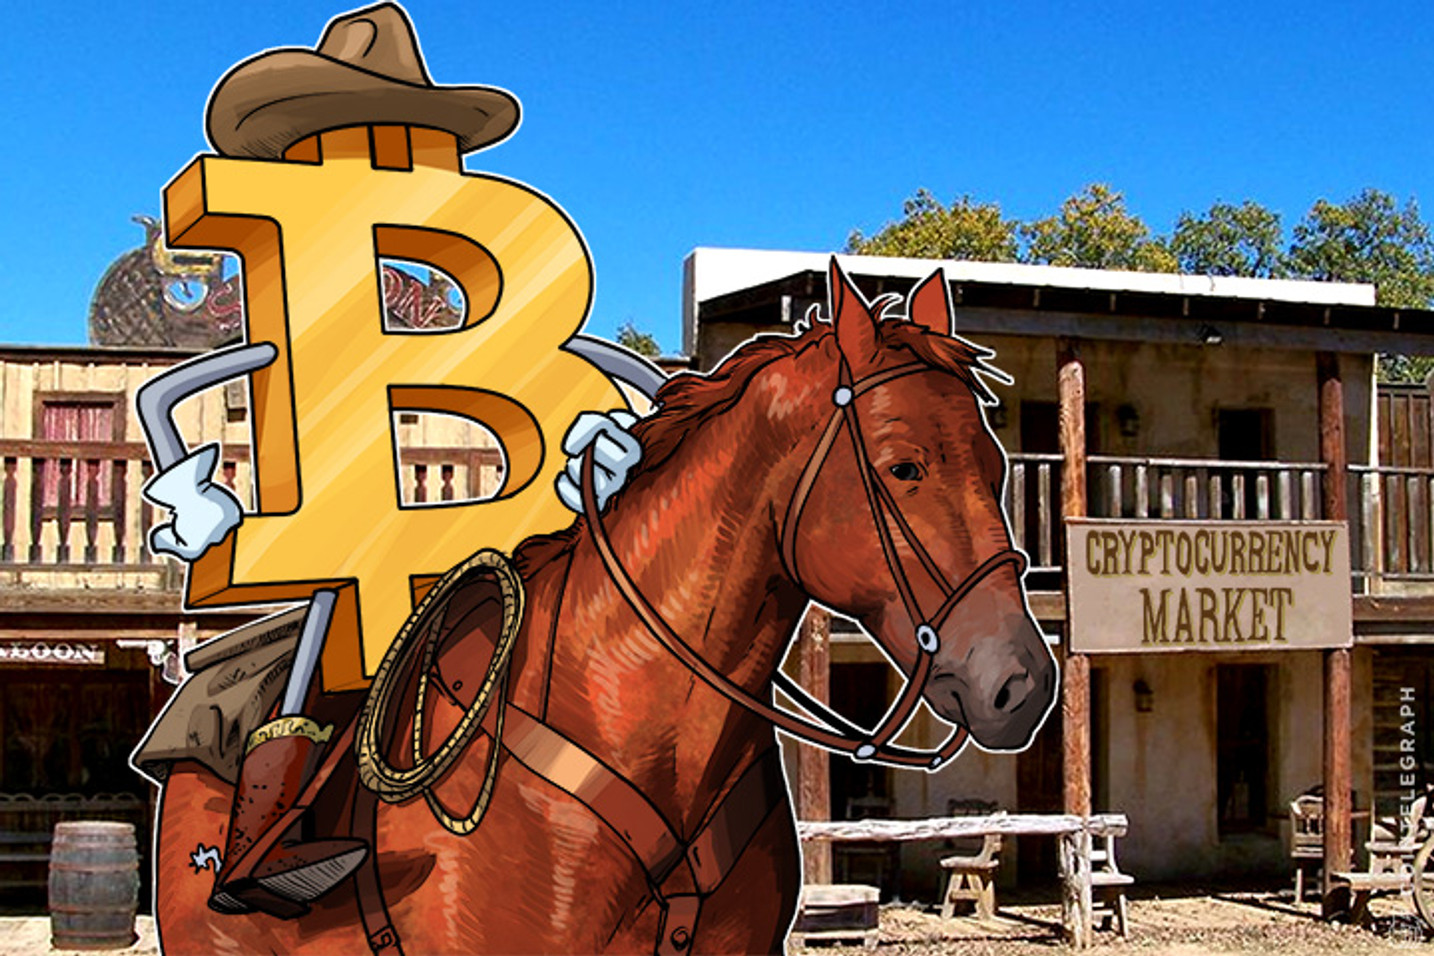 Best Ways to Maximize Profits While Bitcoin Price Marches Upward